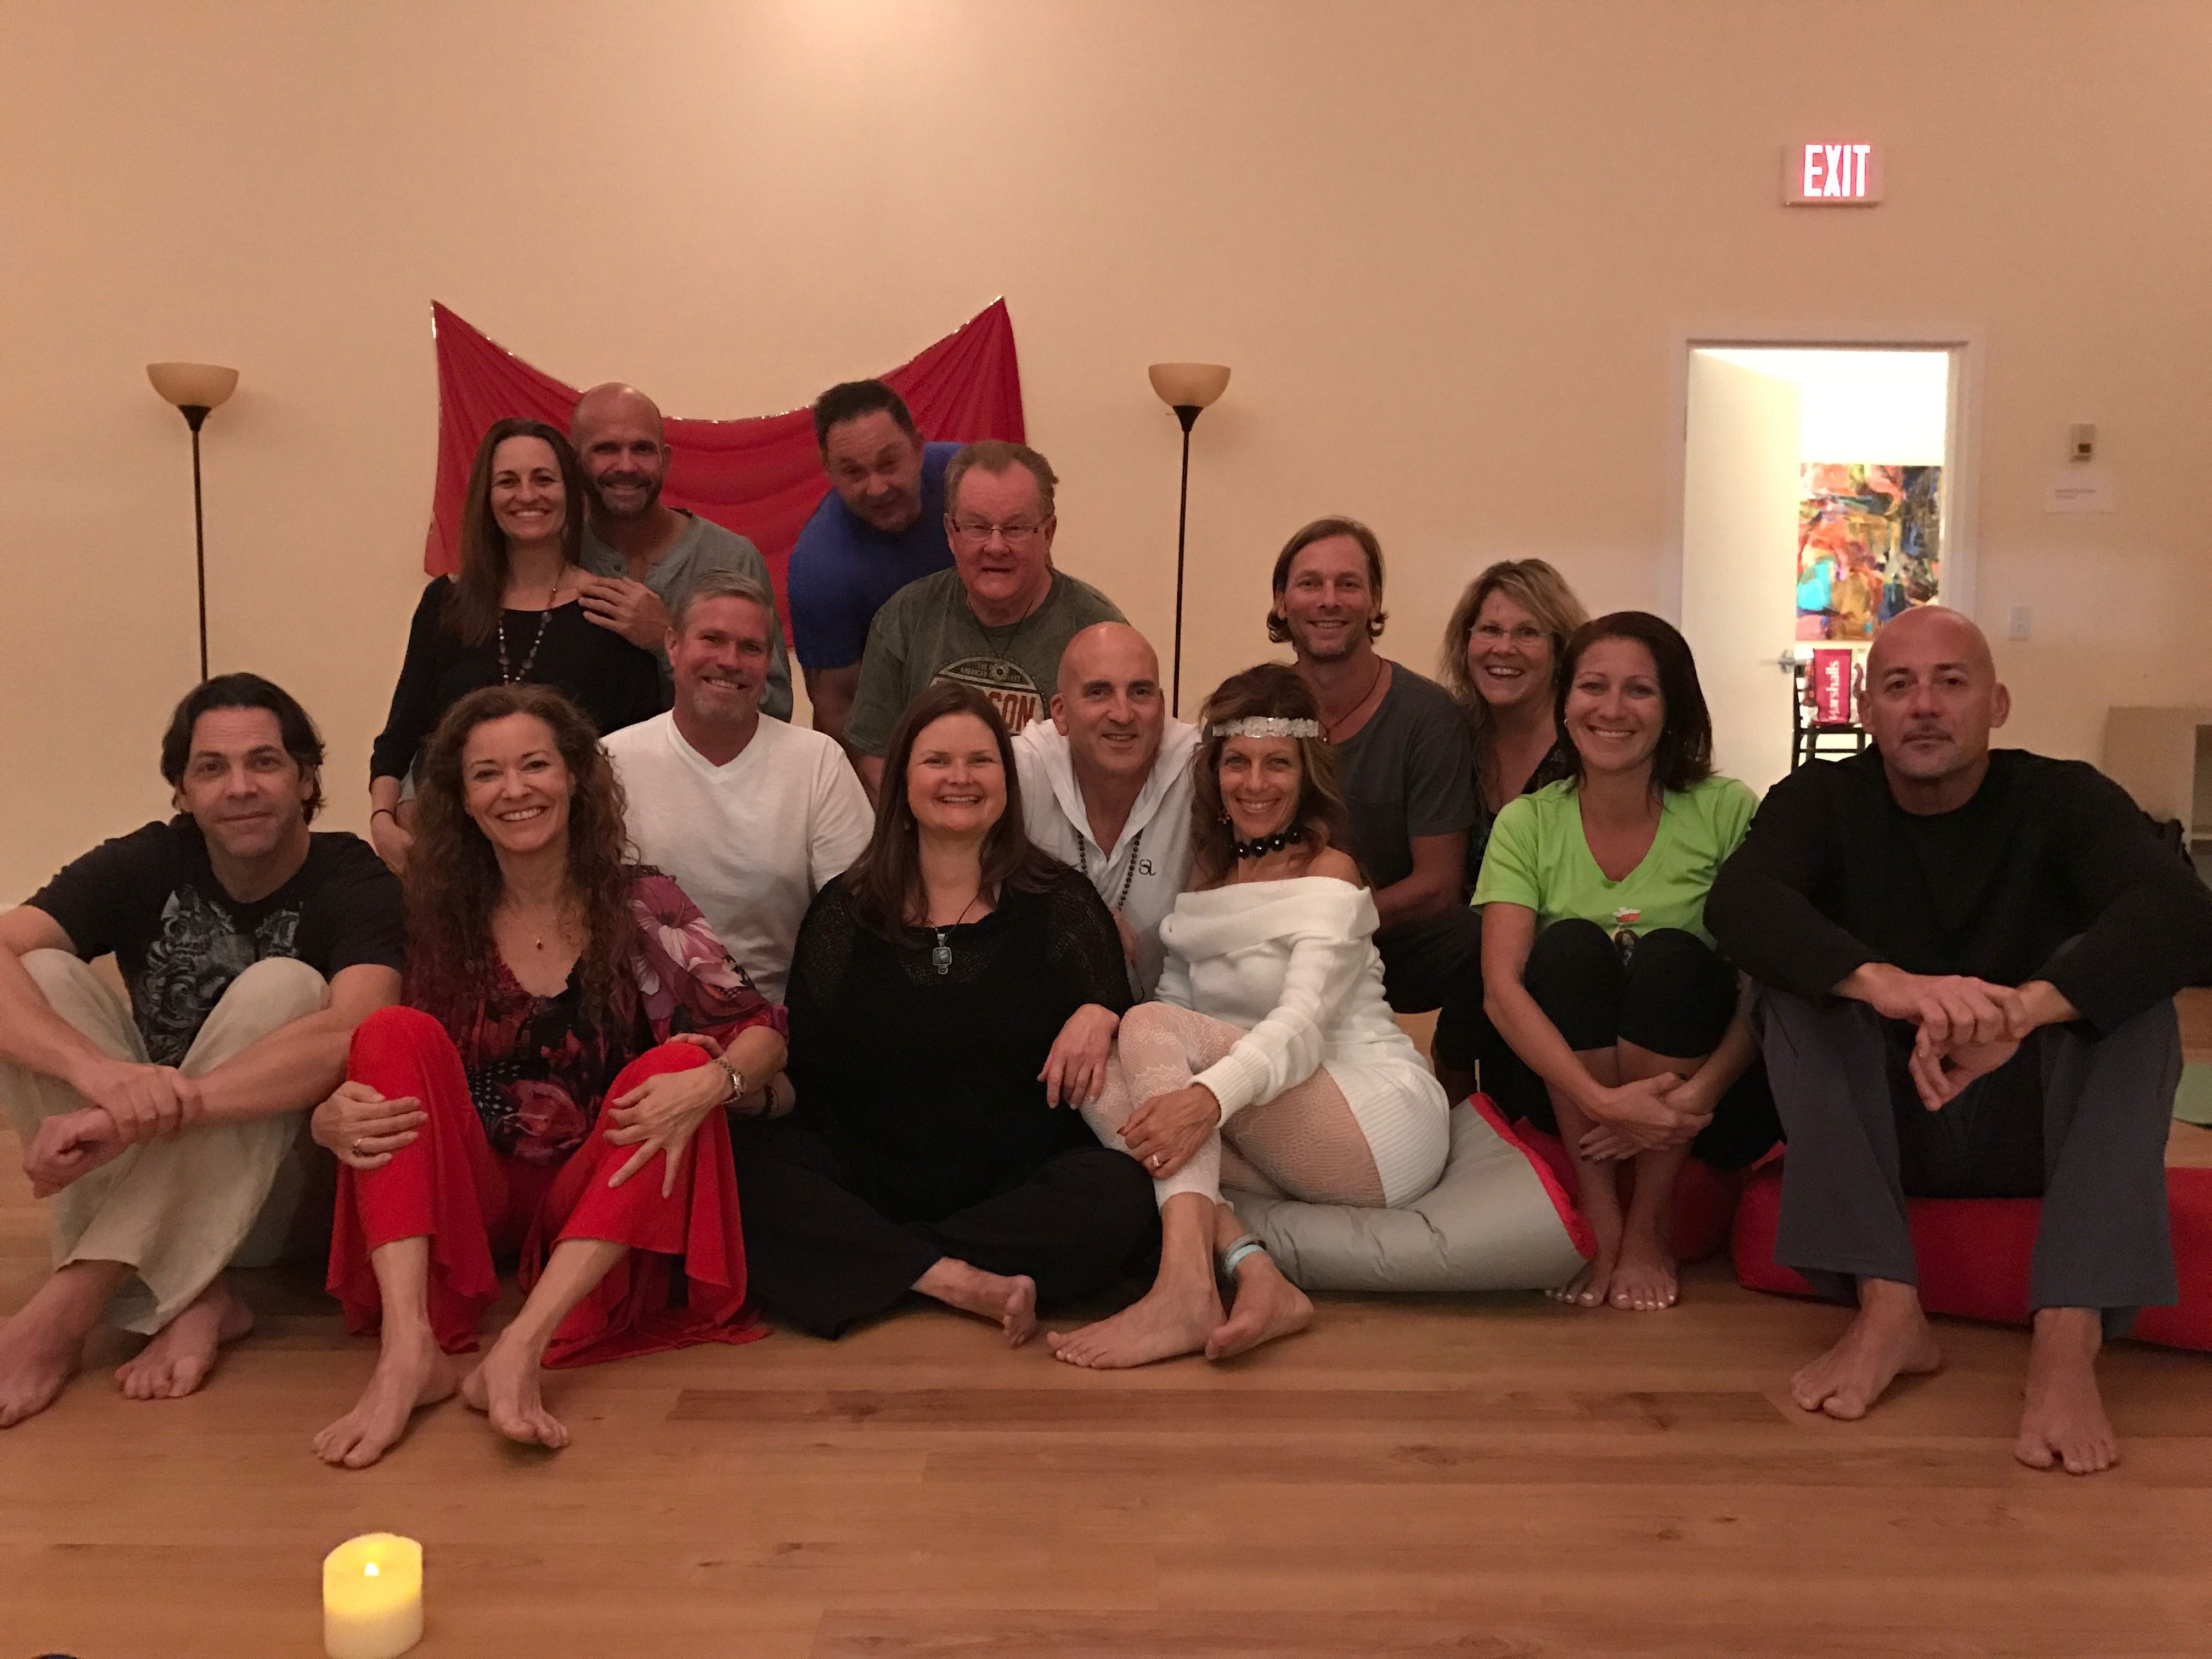 Tantra dating fl meet up